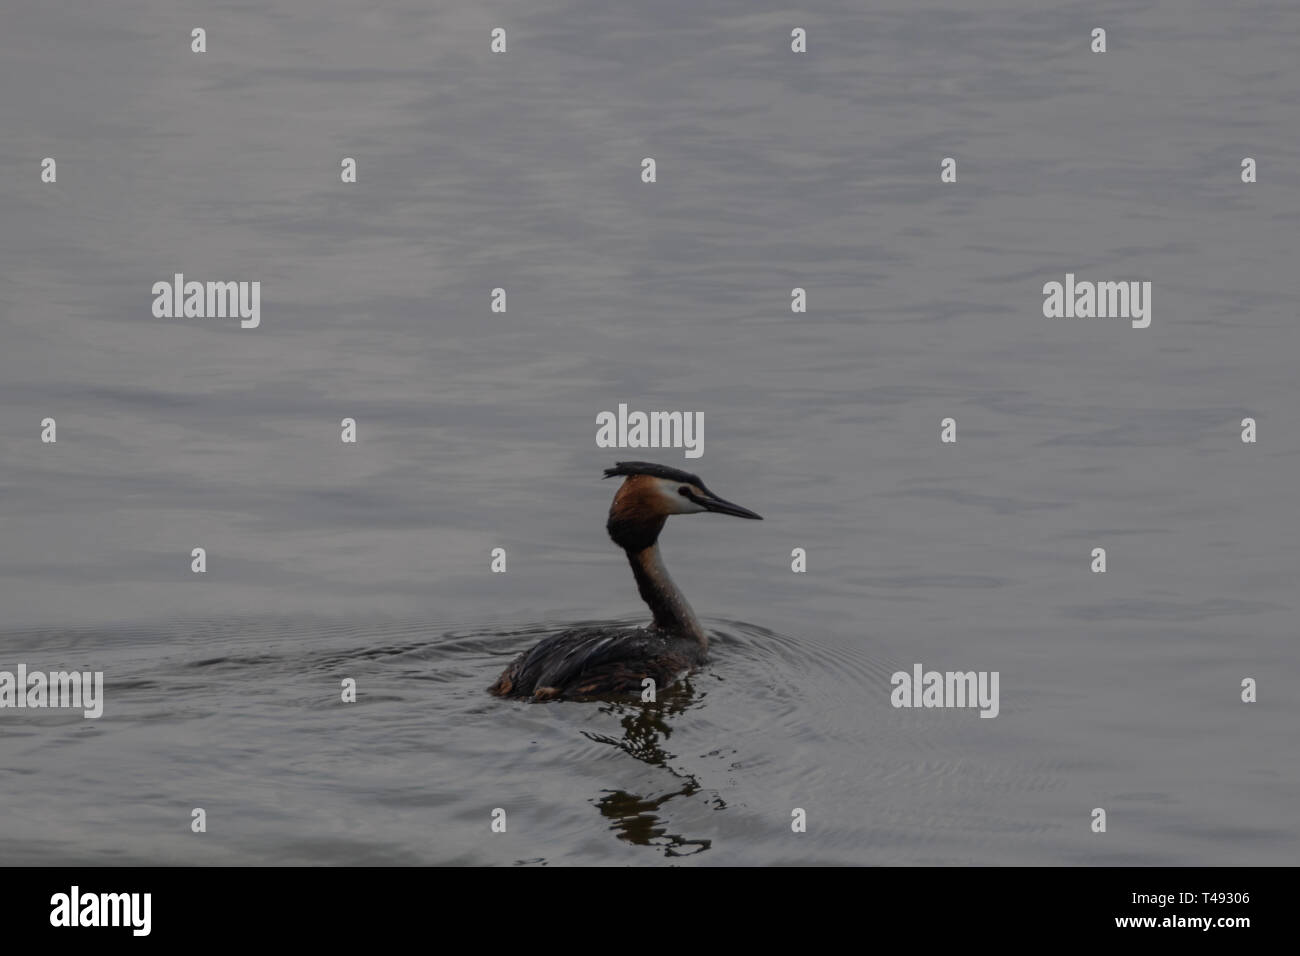 A single great crested Grebe on water - Stock Image